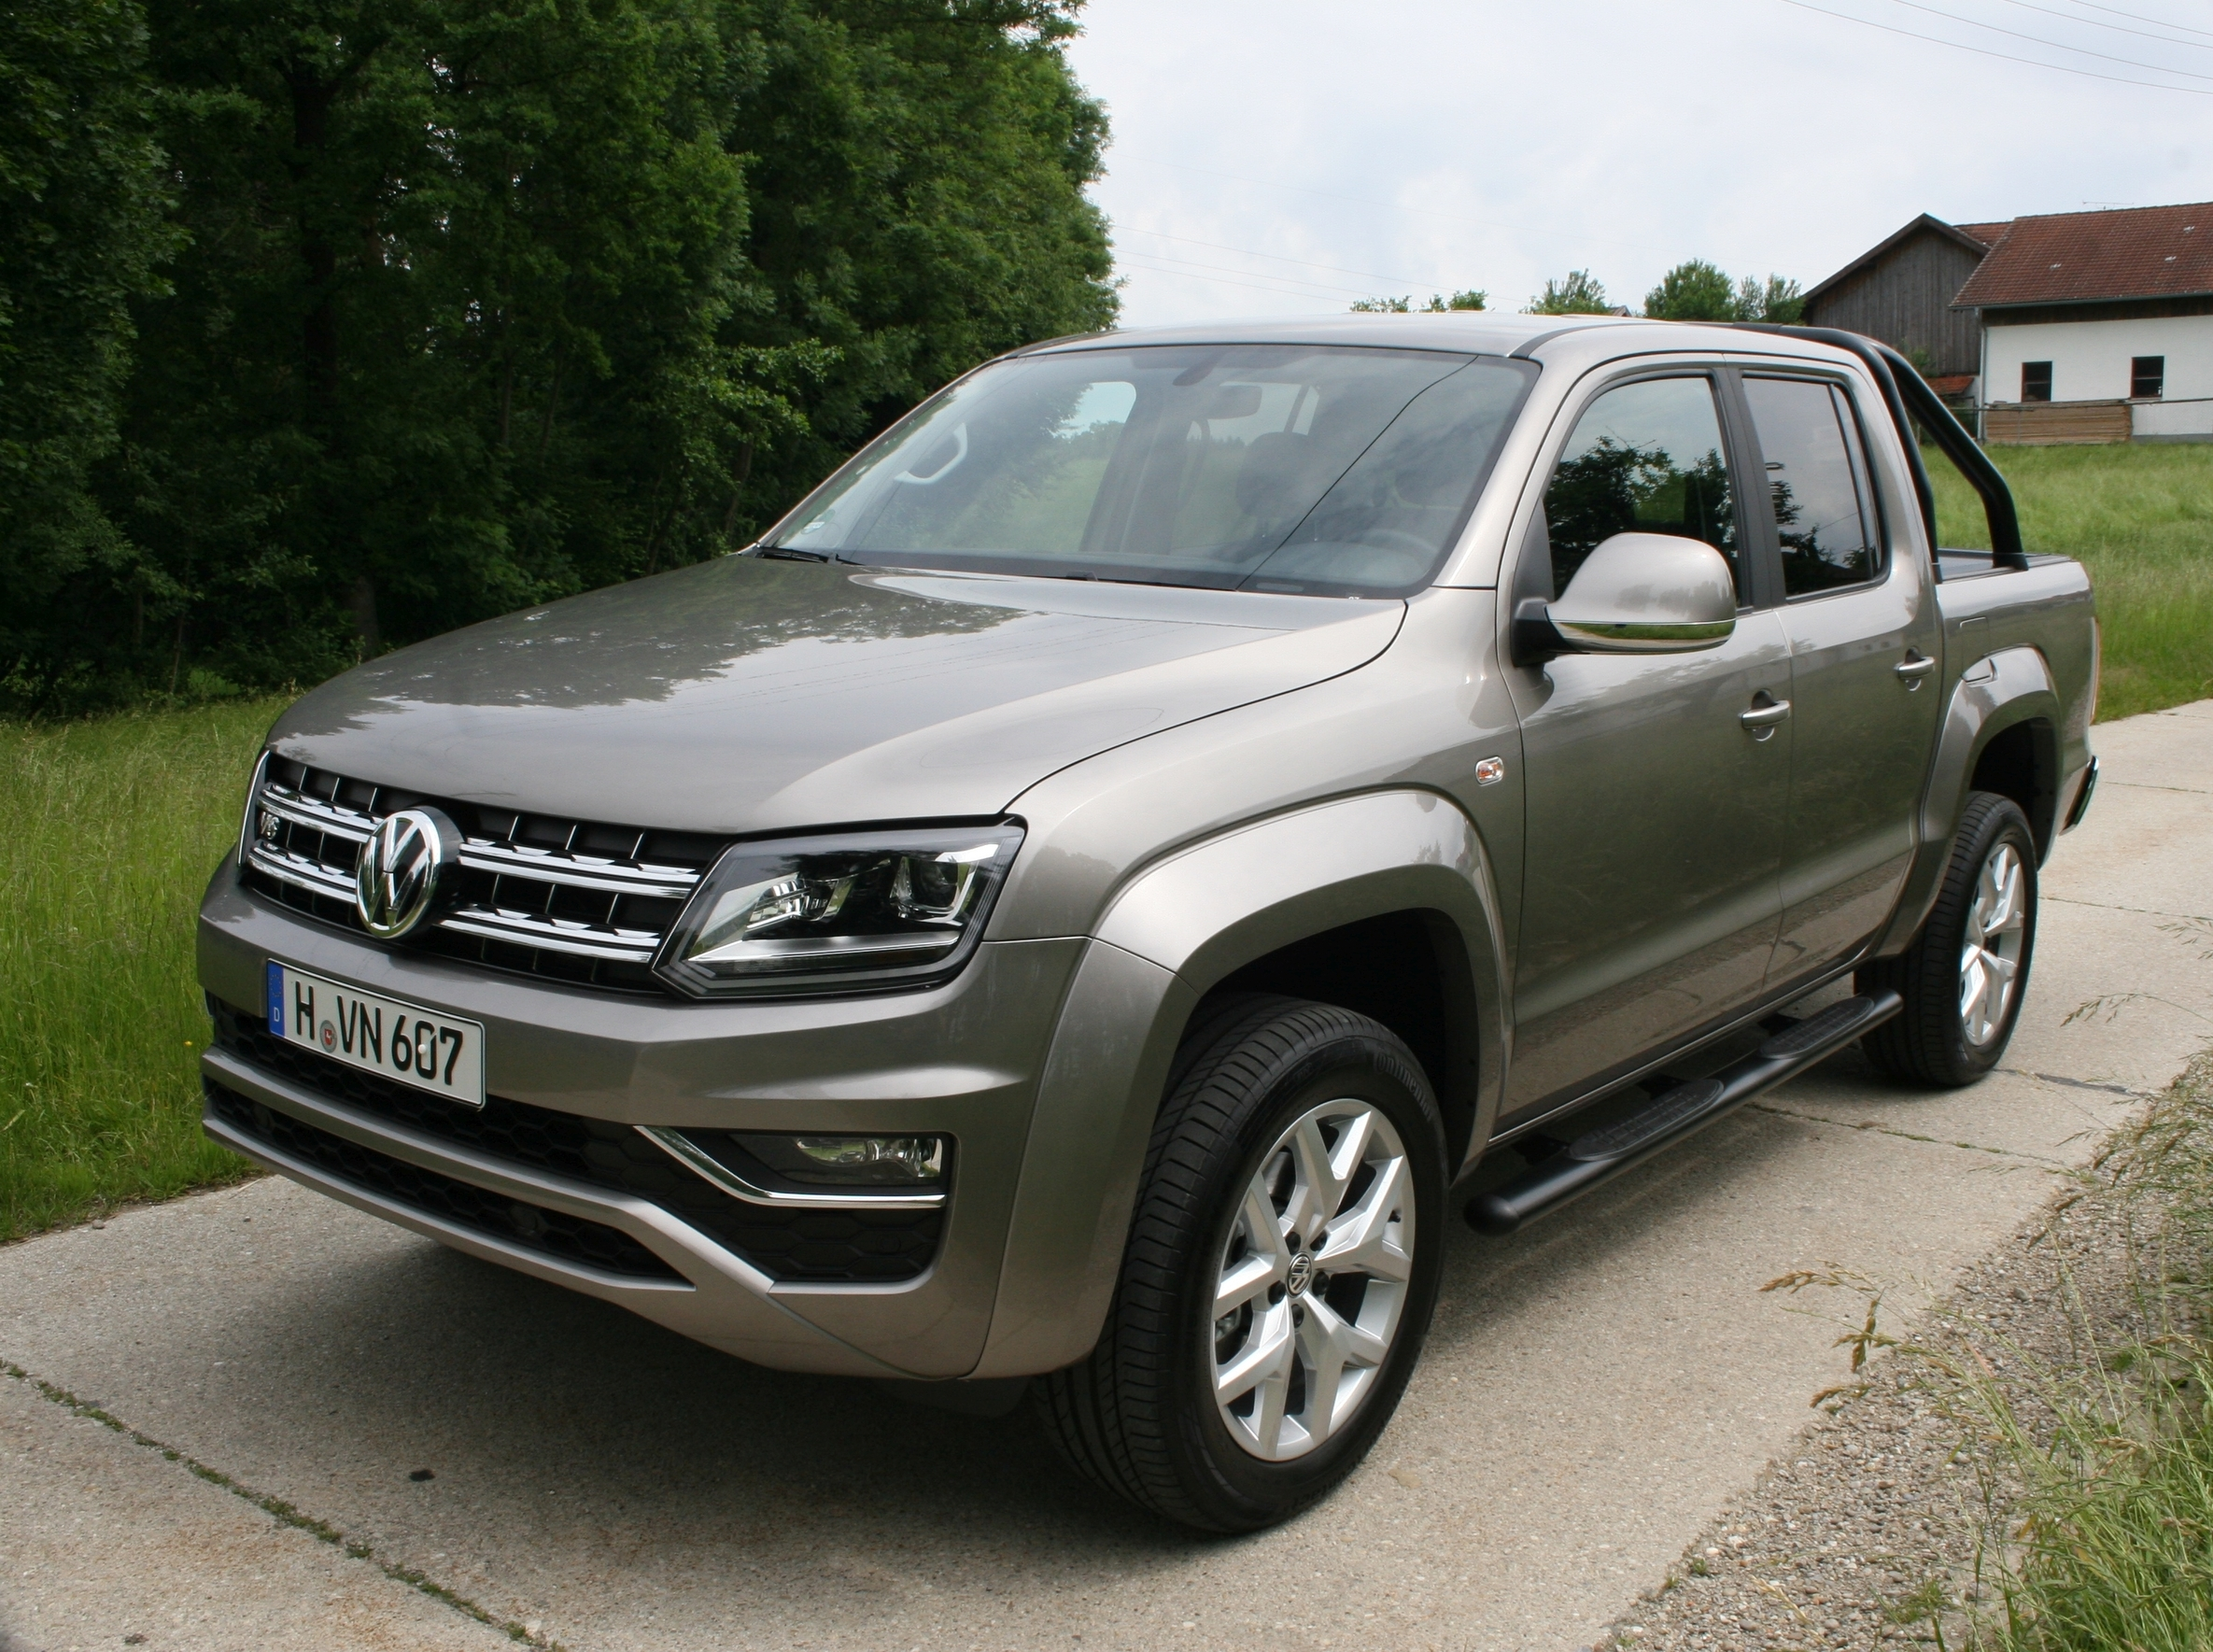 vw amarok v6 neues herz im pick up. Black Bedroom Furniture Sets. Home Design Ideas